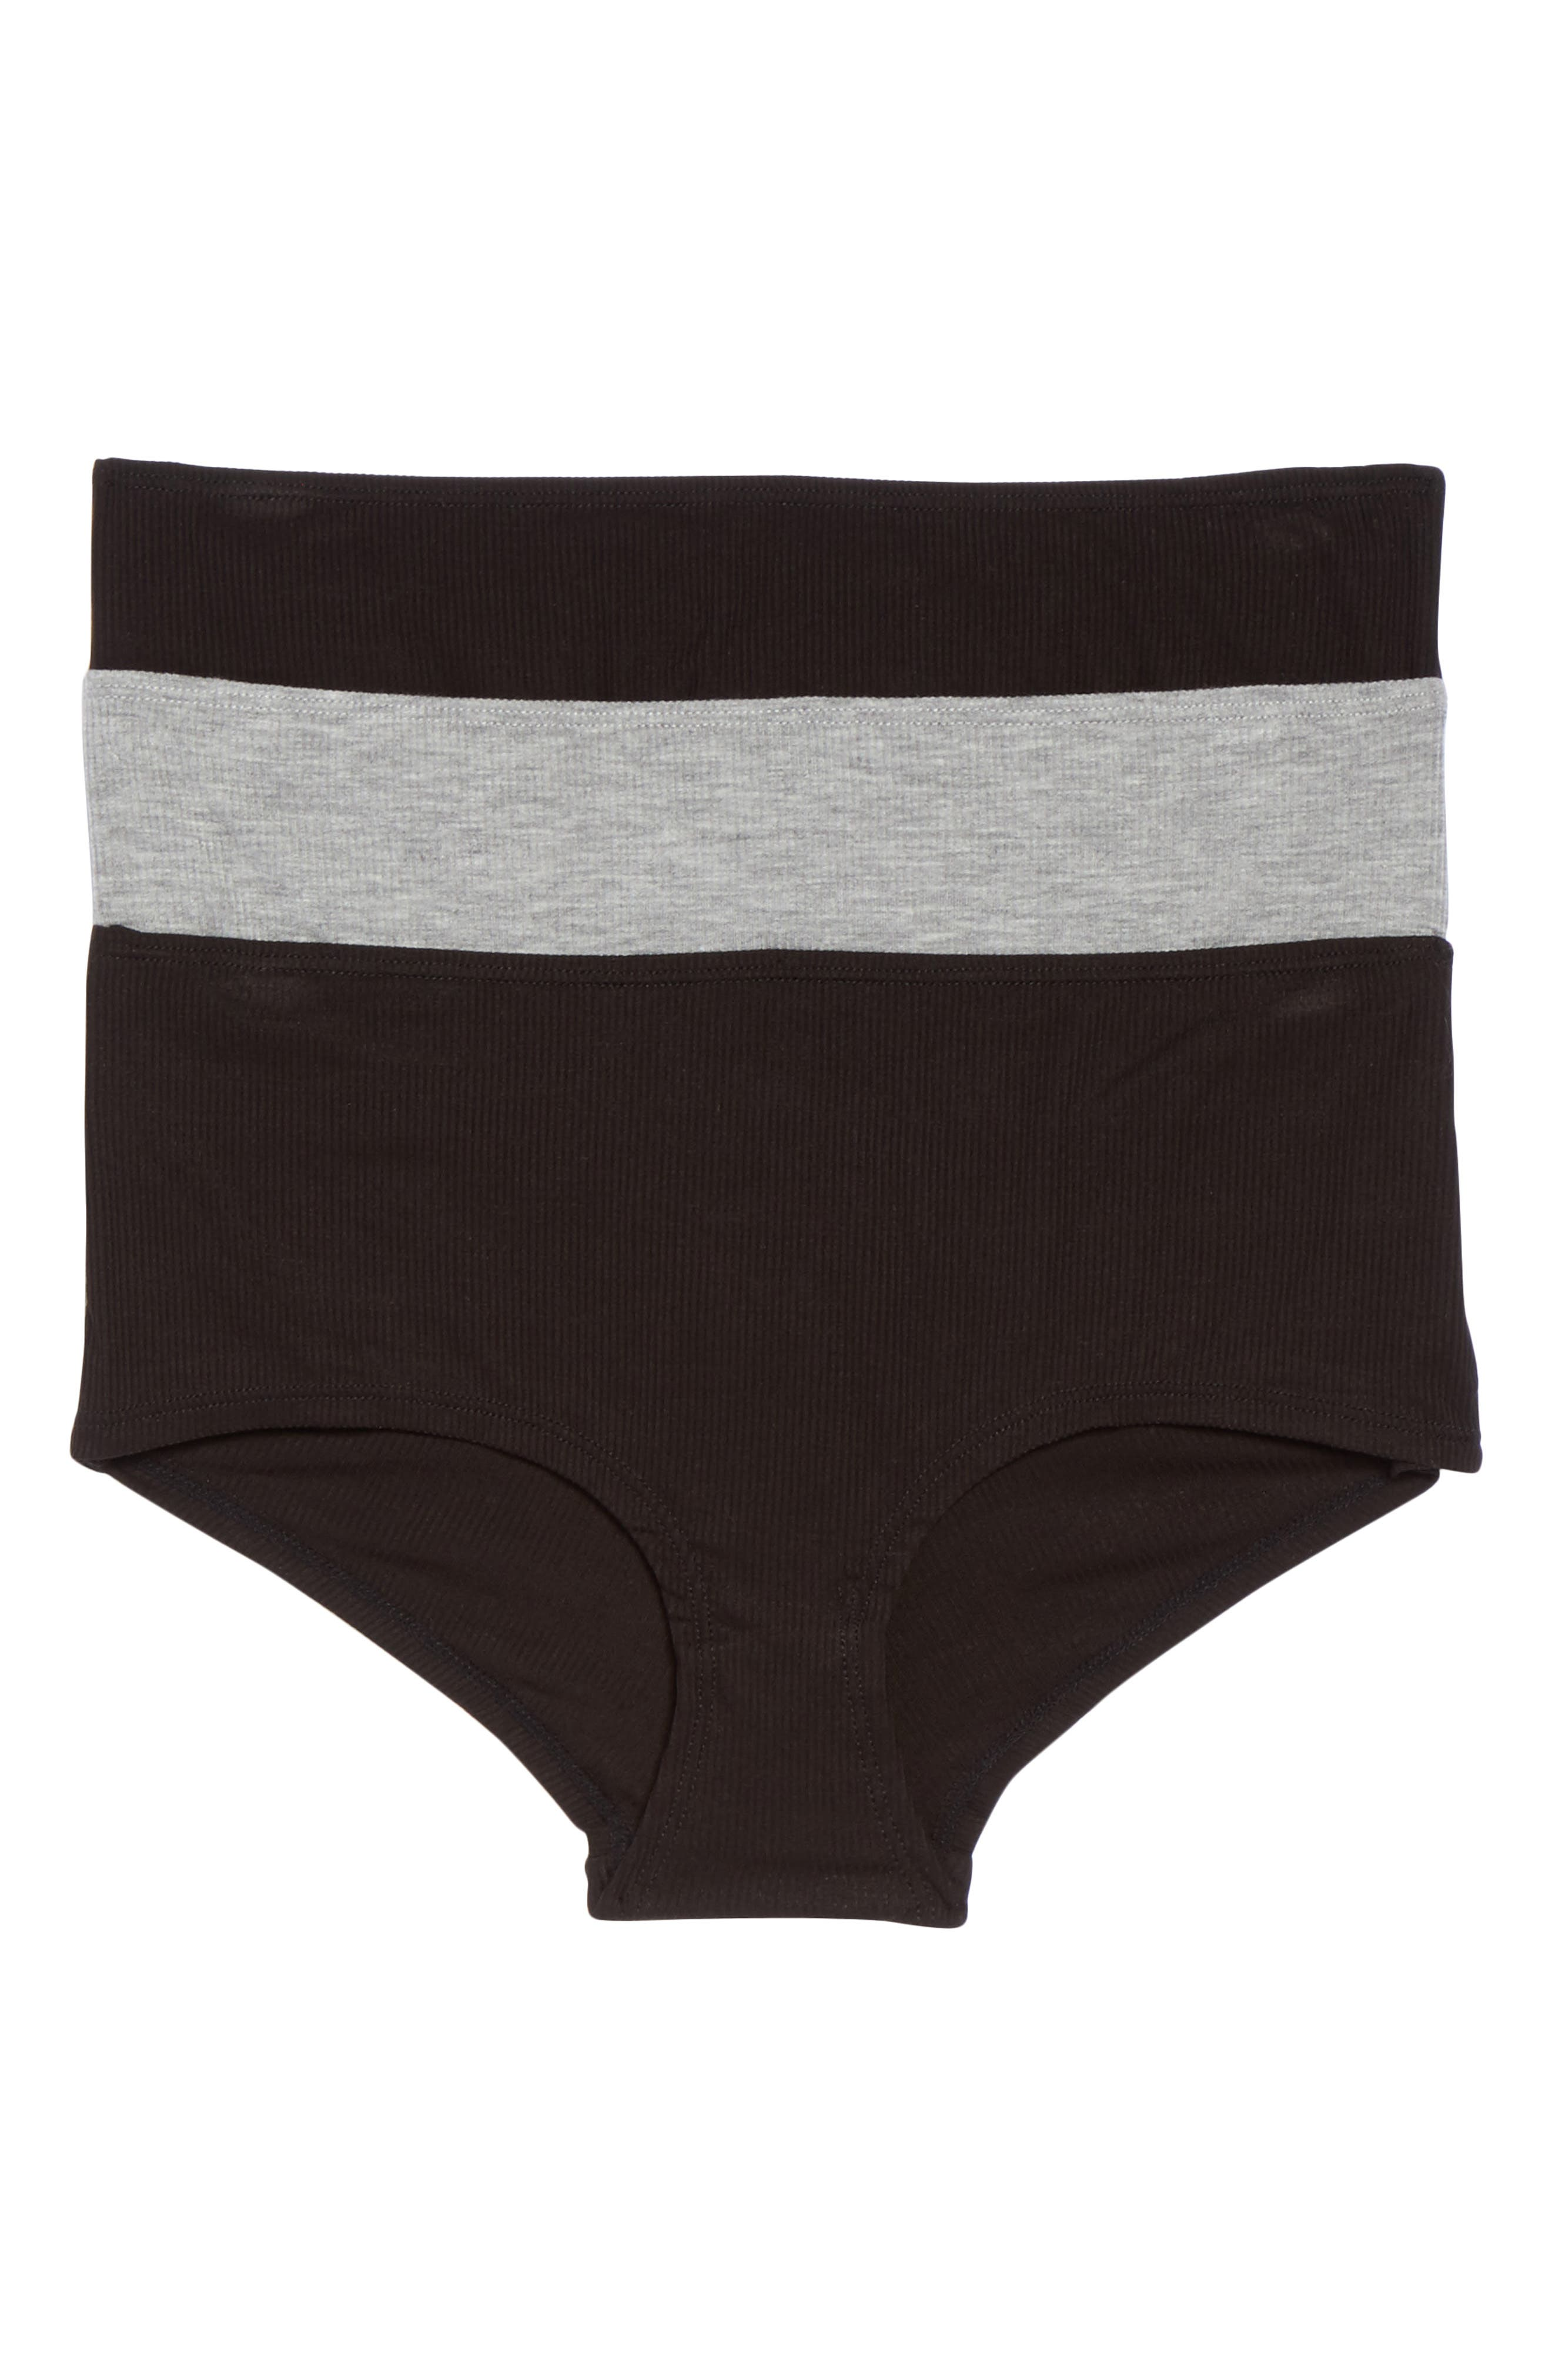 Honeydew 3-Pack Rib Knit Hipster Briefs